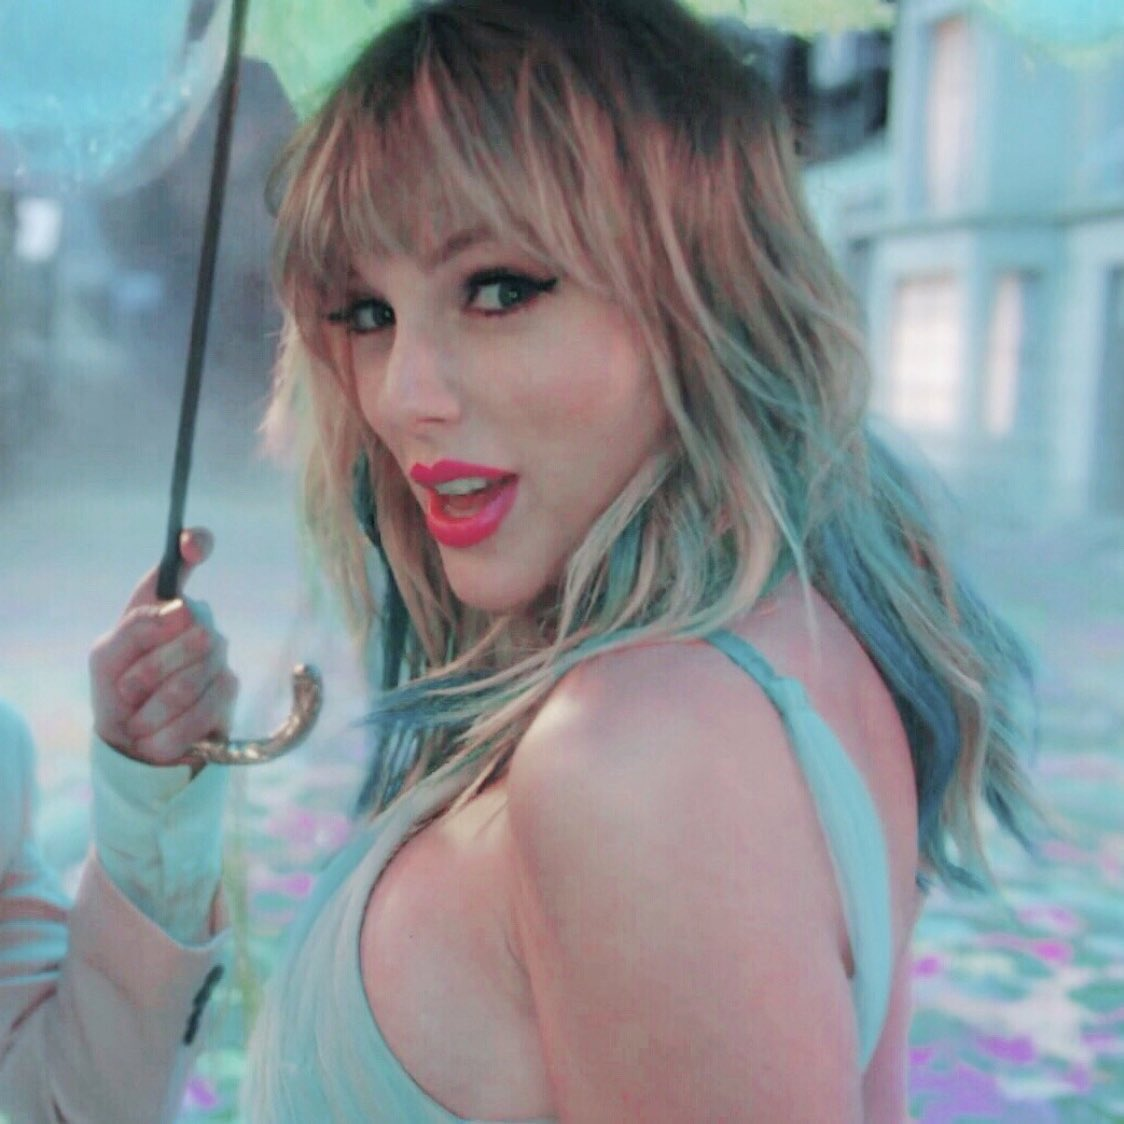 ME! when someone asks if I want a snack. @taylornation13 #MeOutNOW